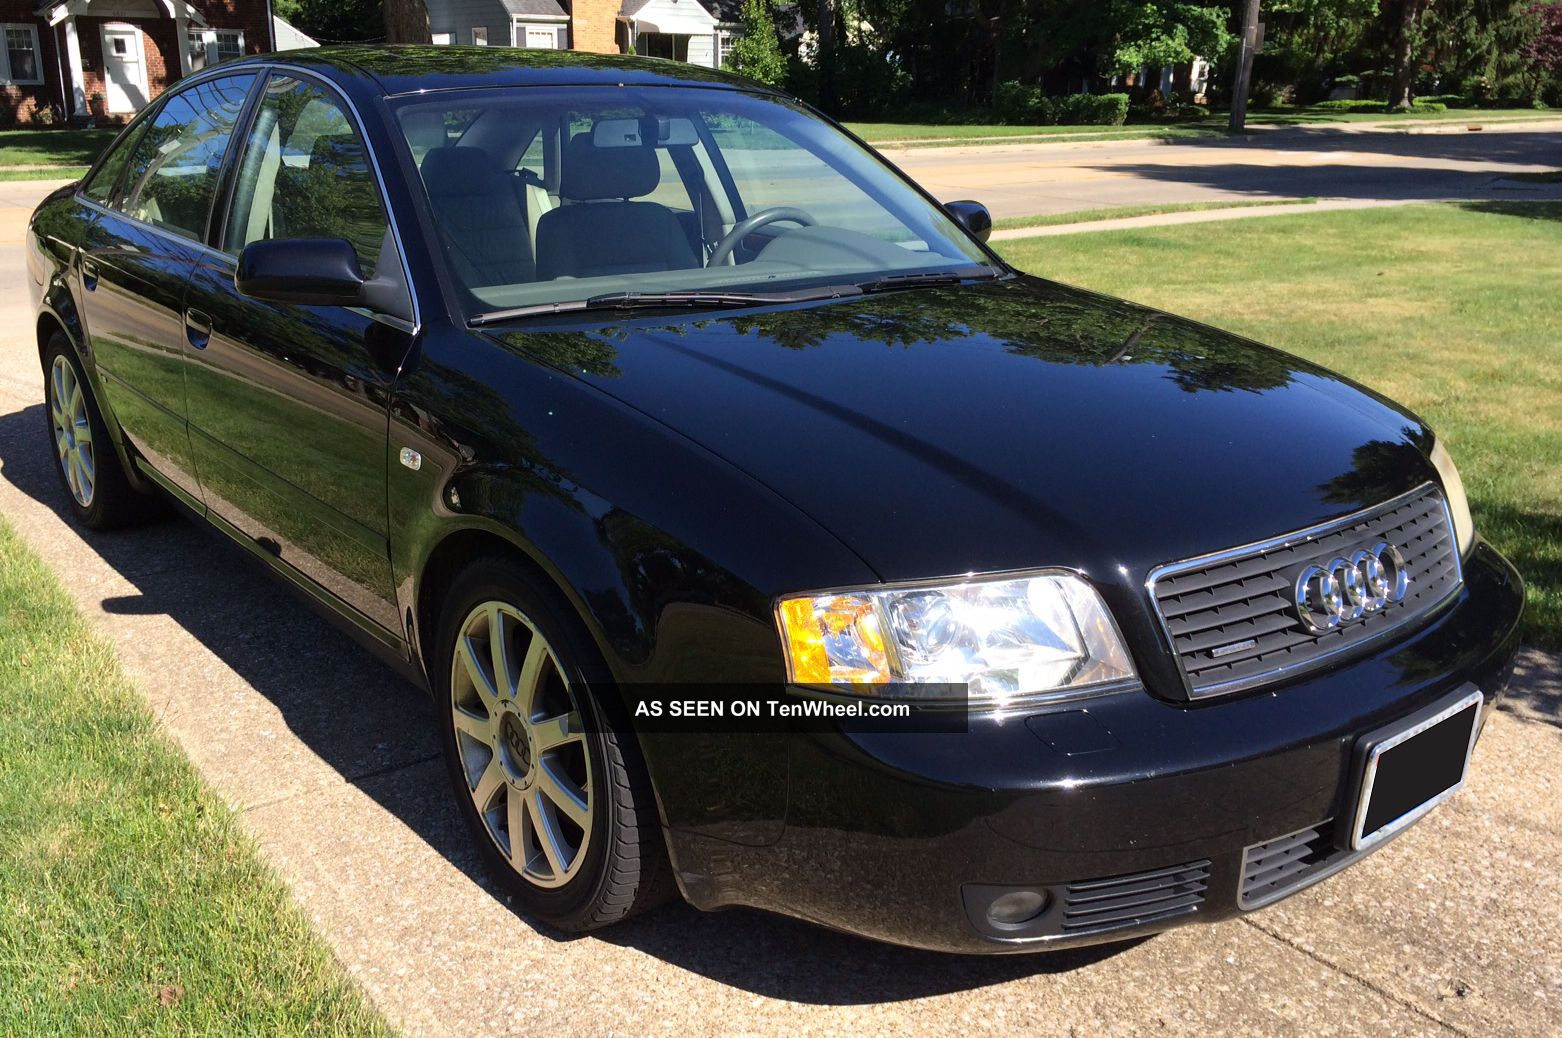 2004 audi a6 quattro s line 2 7l v6 twin turbo all wheel drive title. Black Bedroom Furniture Sets. Home Design Ideas